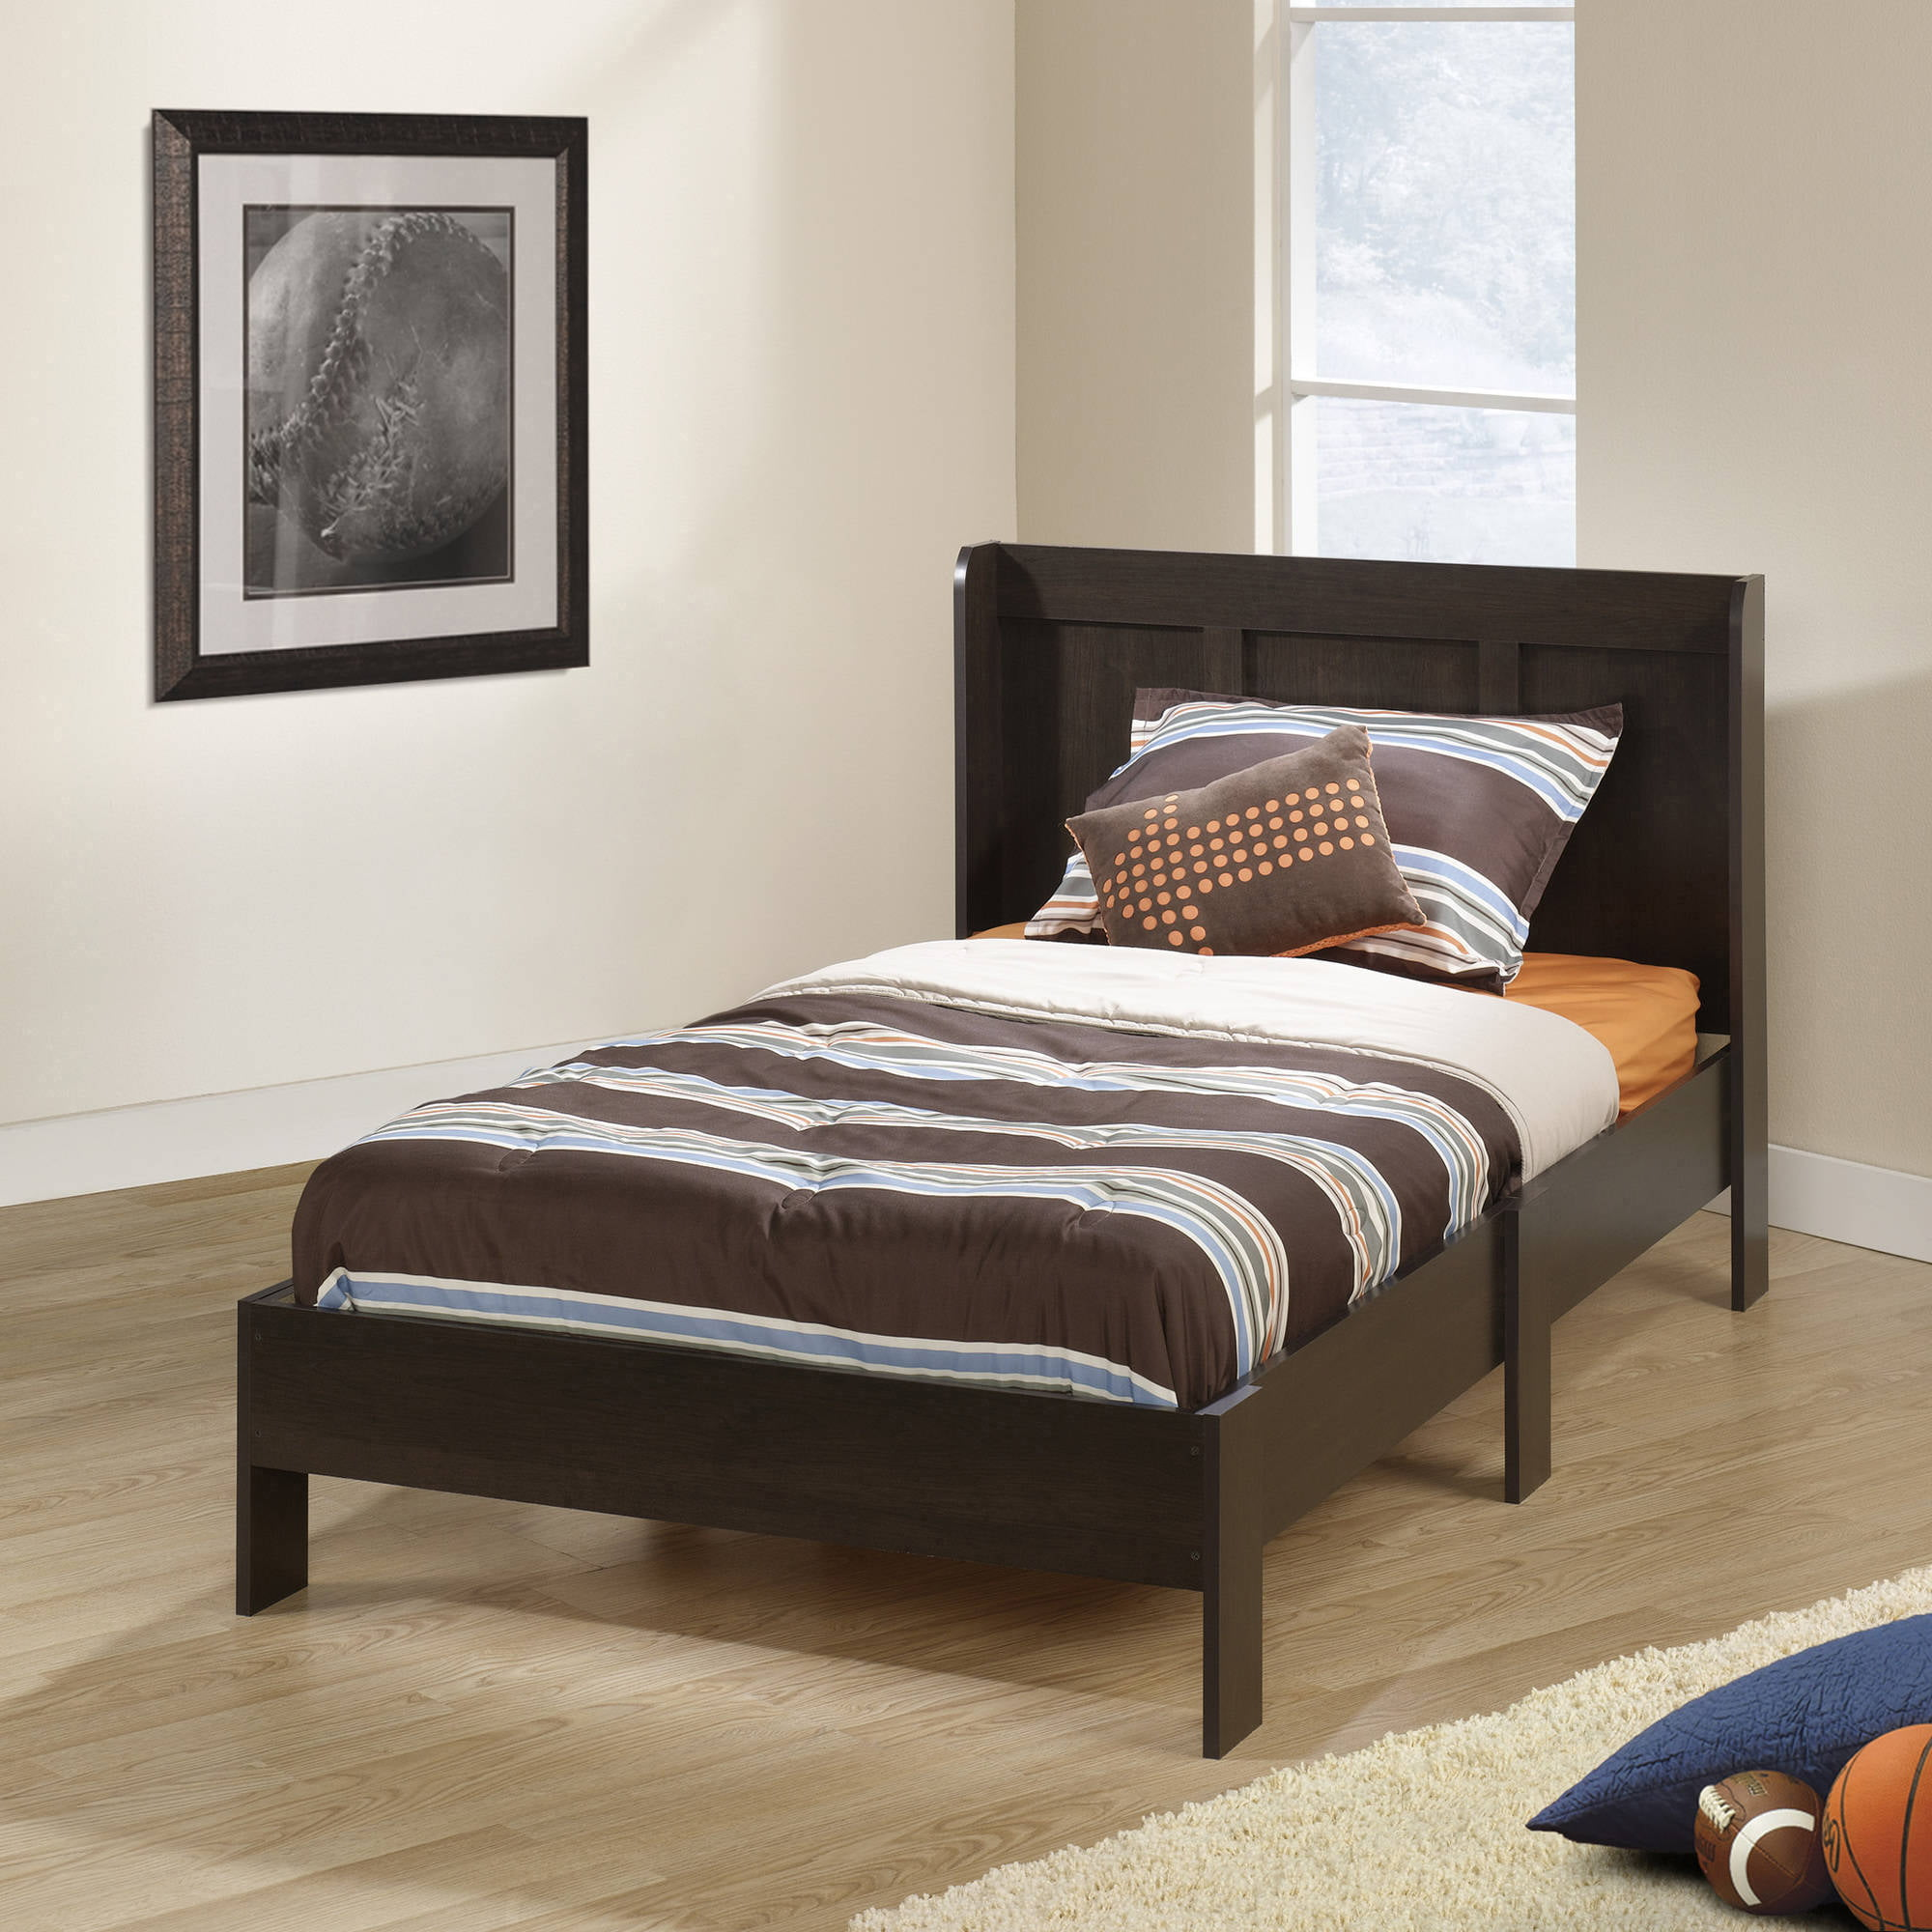 mainstays parklane twin platform bed and headboard multiple finishes walmartcom